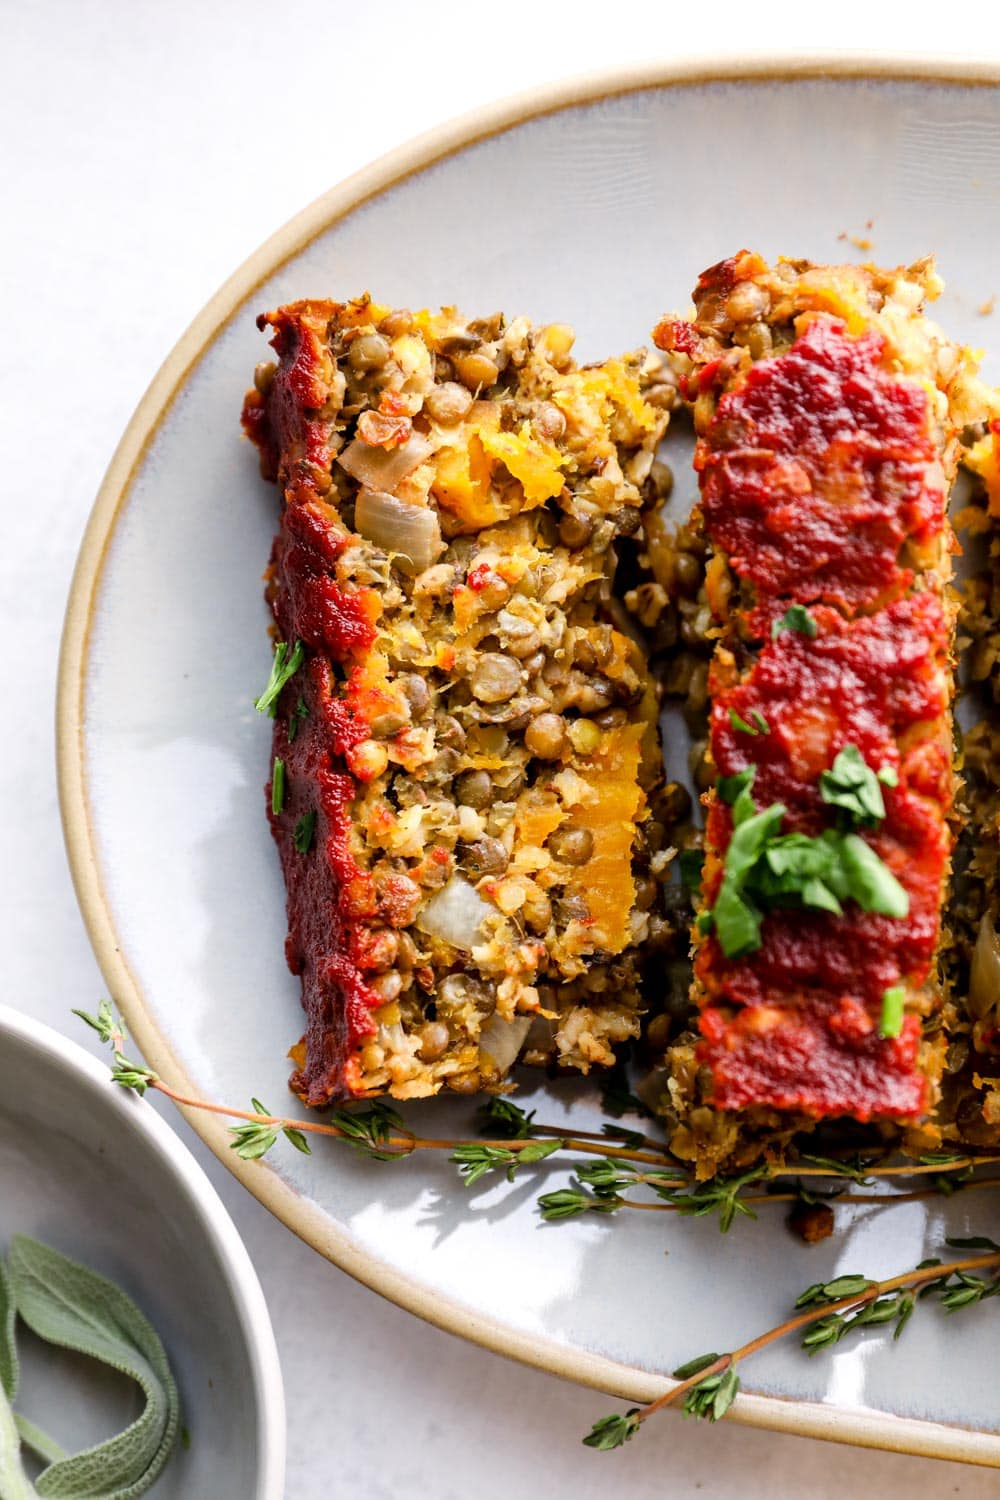 A closeup of a sliced piece of lentil loaf with butternut squash pieces.